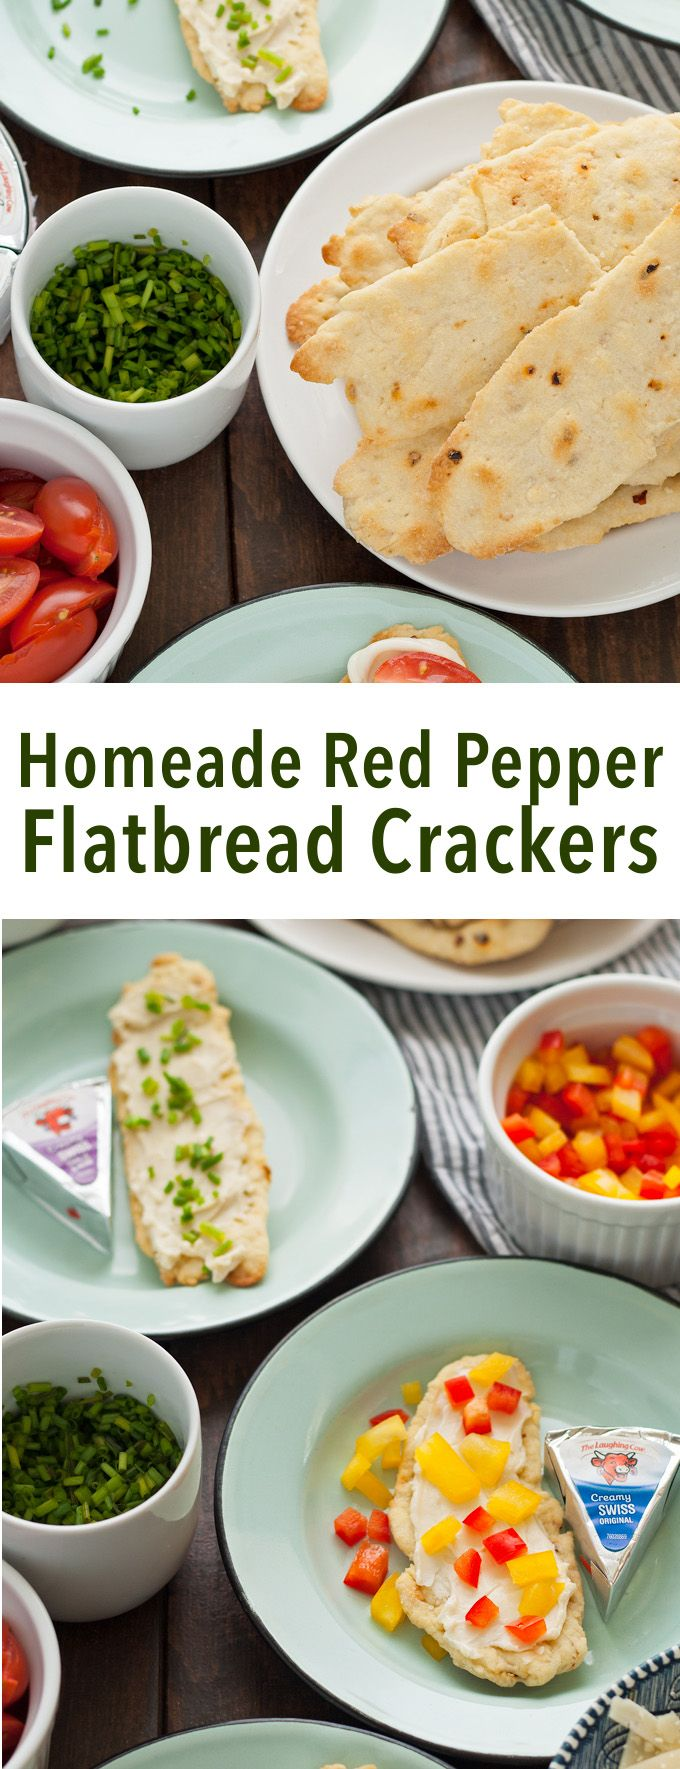 Try these homemade red pepper flatbread crackers with Laughing Cow cheese and some of my easy topping suggestions to reinvent snacking! | honeyandbirch.com